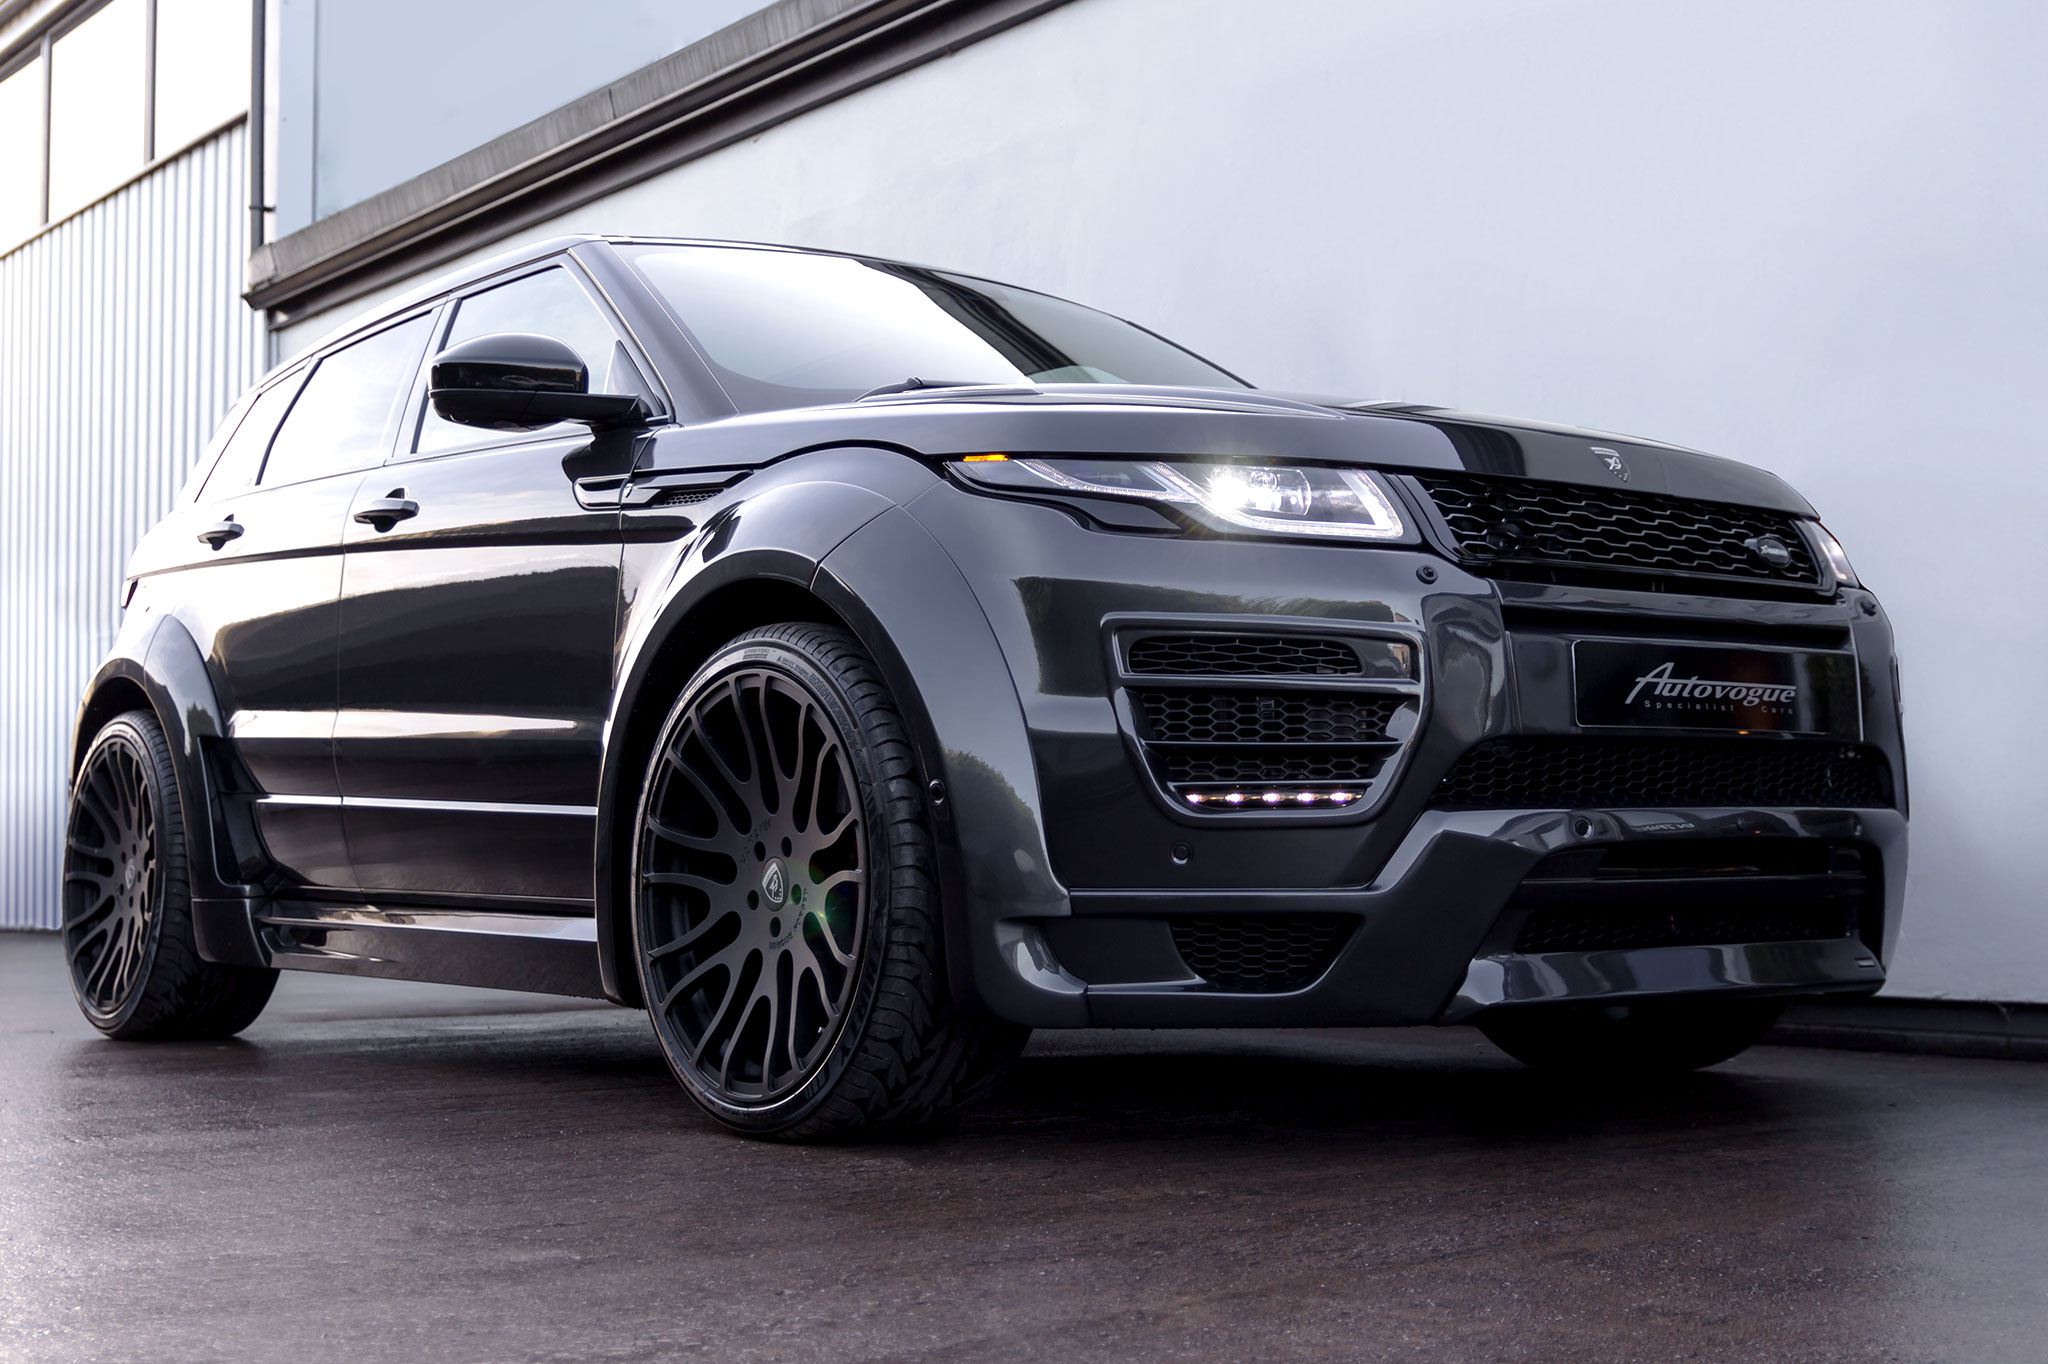 Range Rover Paint >> Hamann Range Rover Evoque 5 Door Widebody